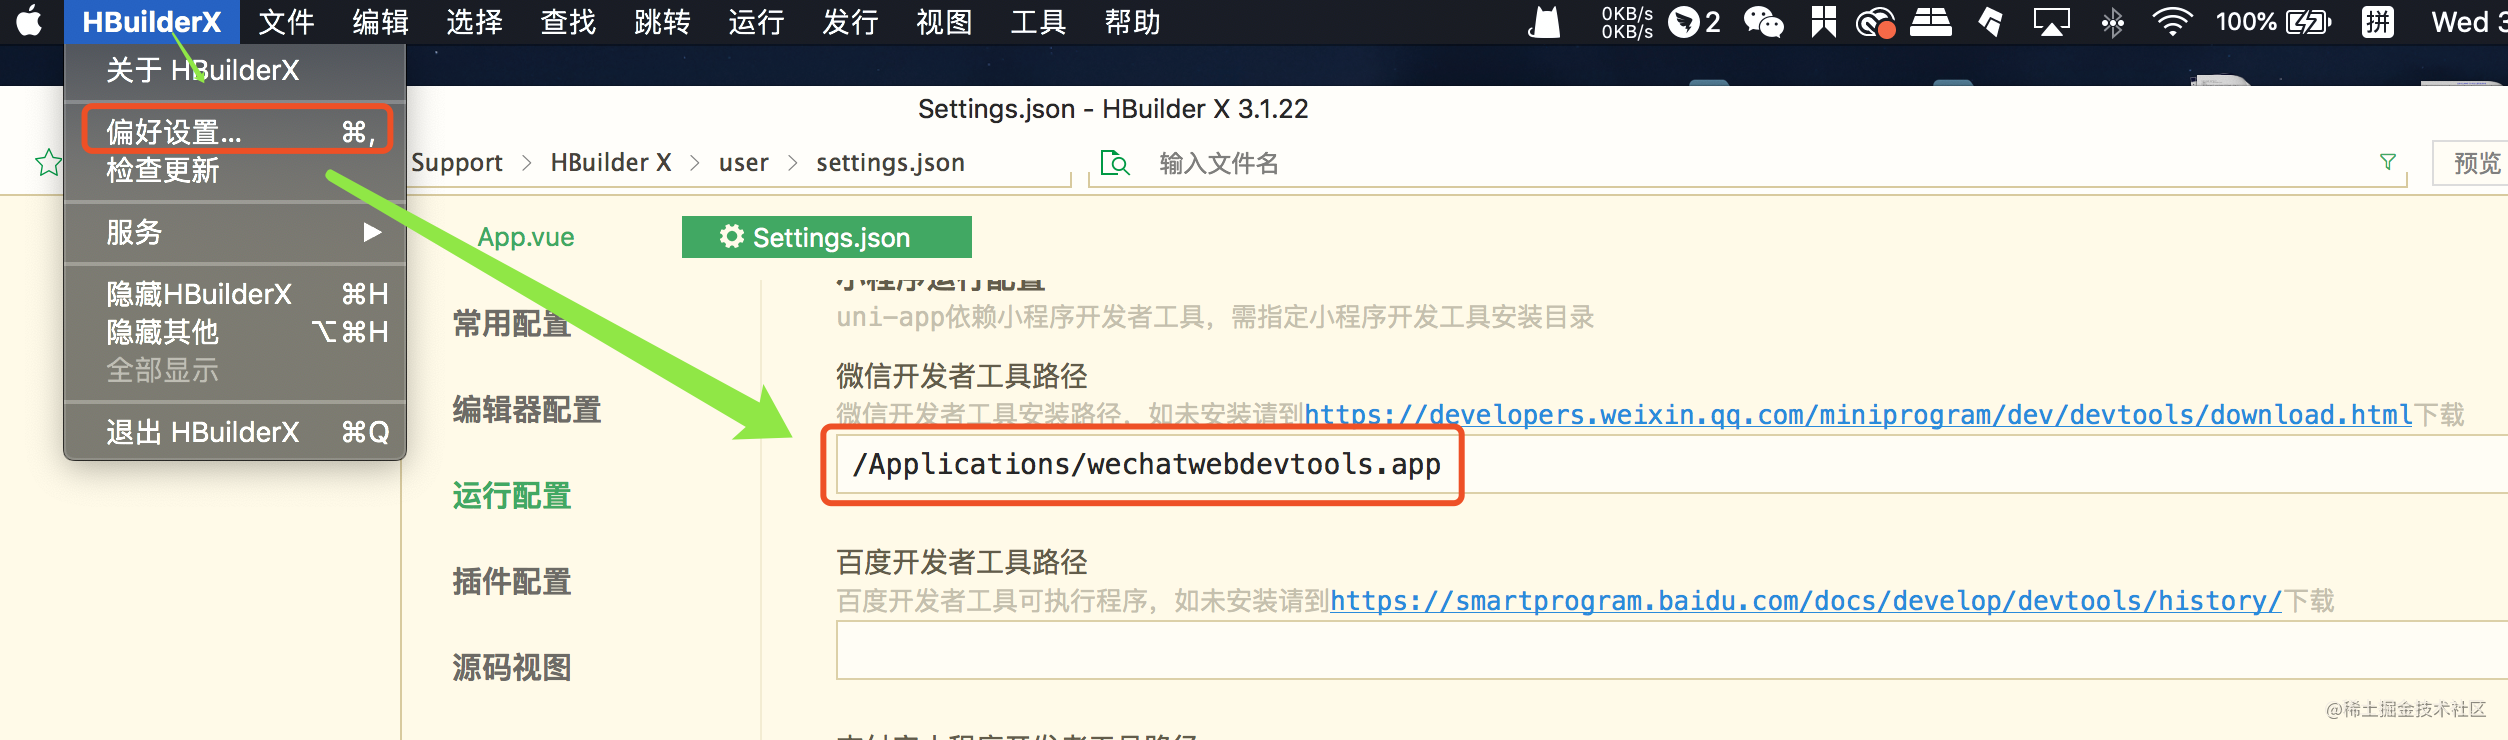 wechat-tool-path.png